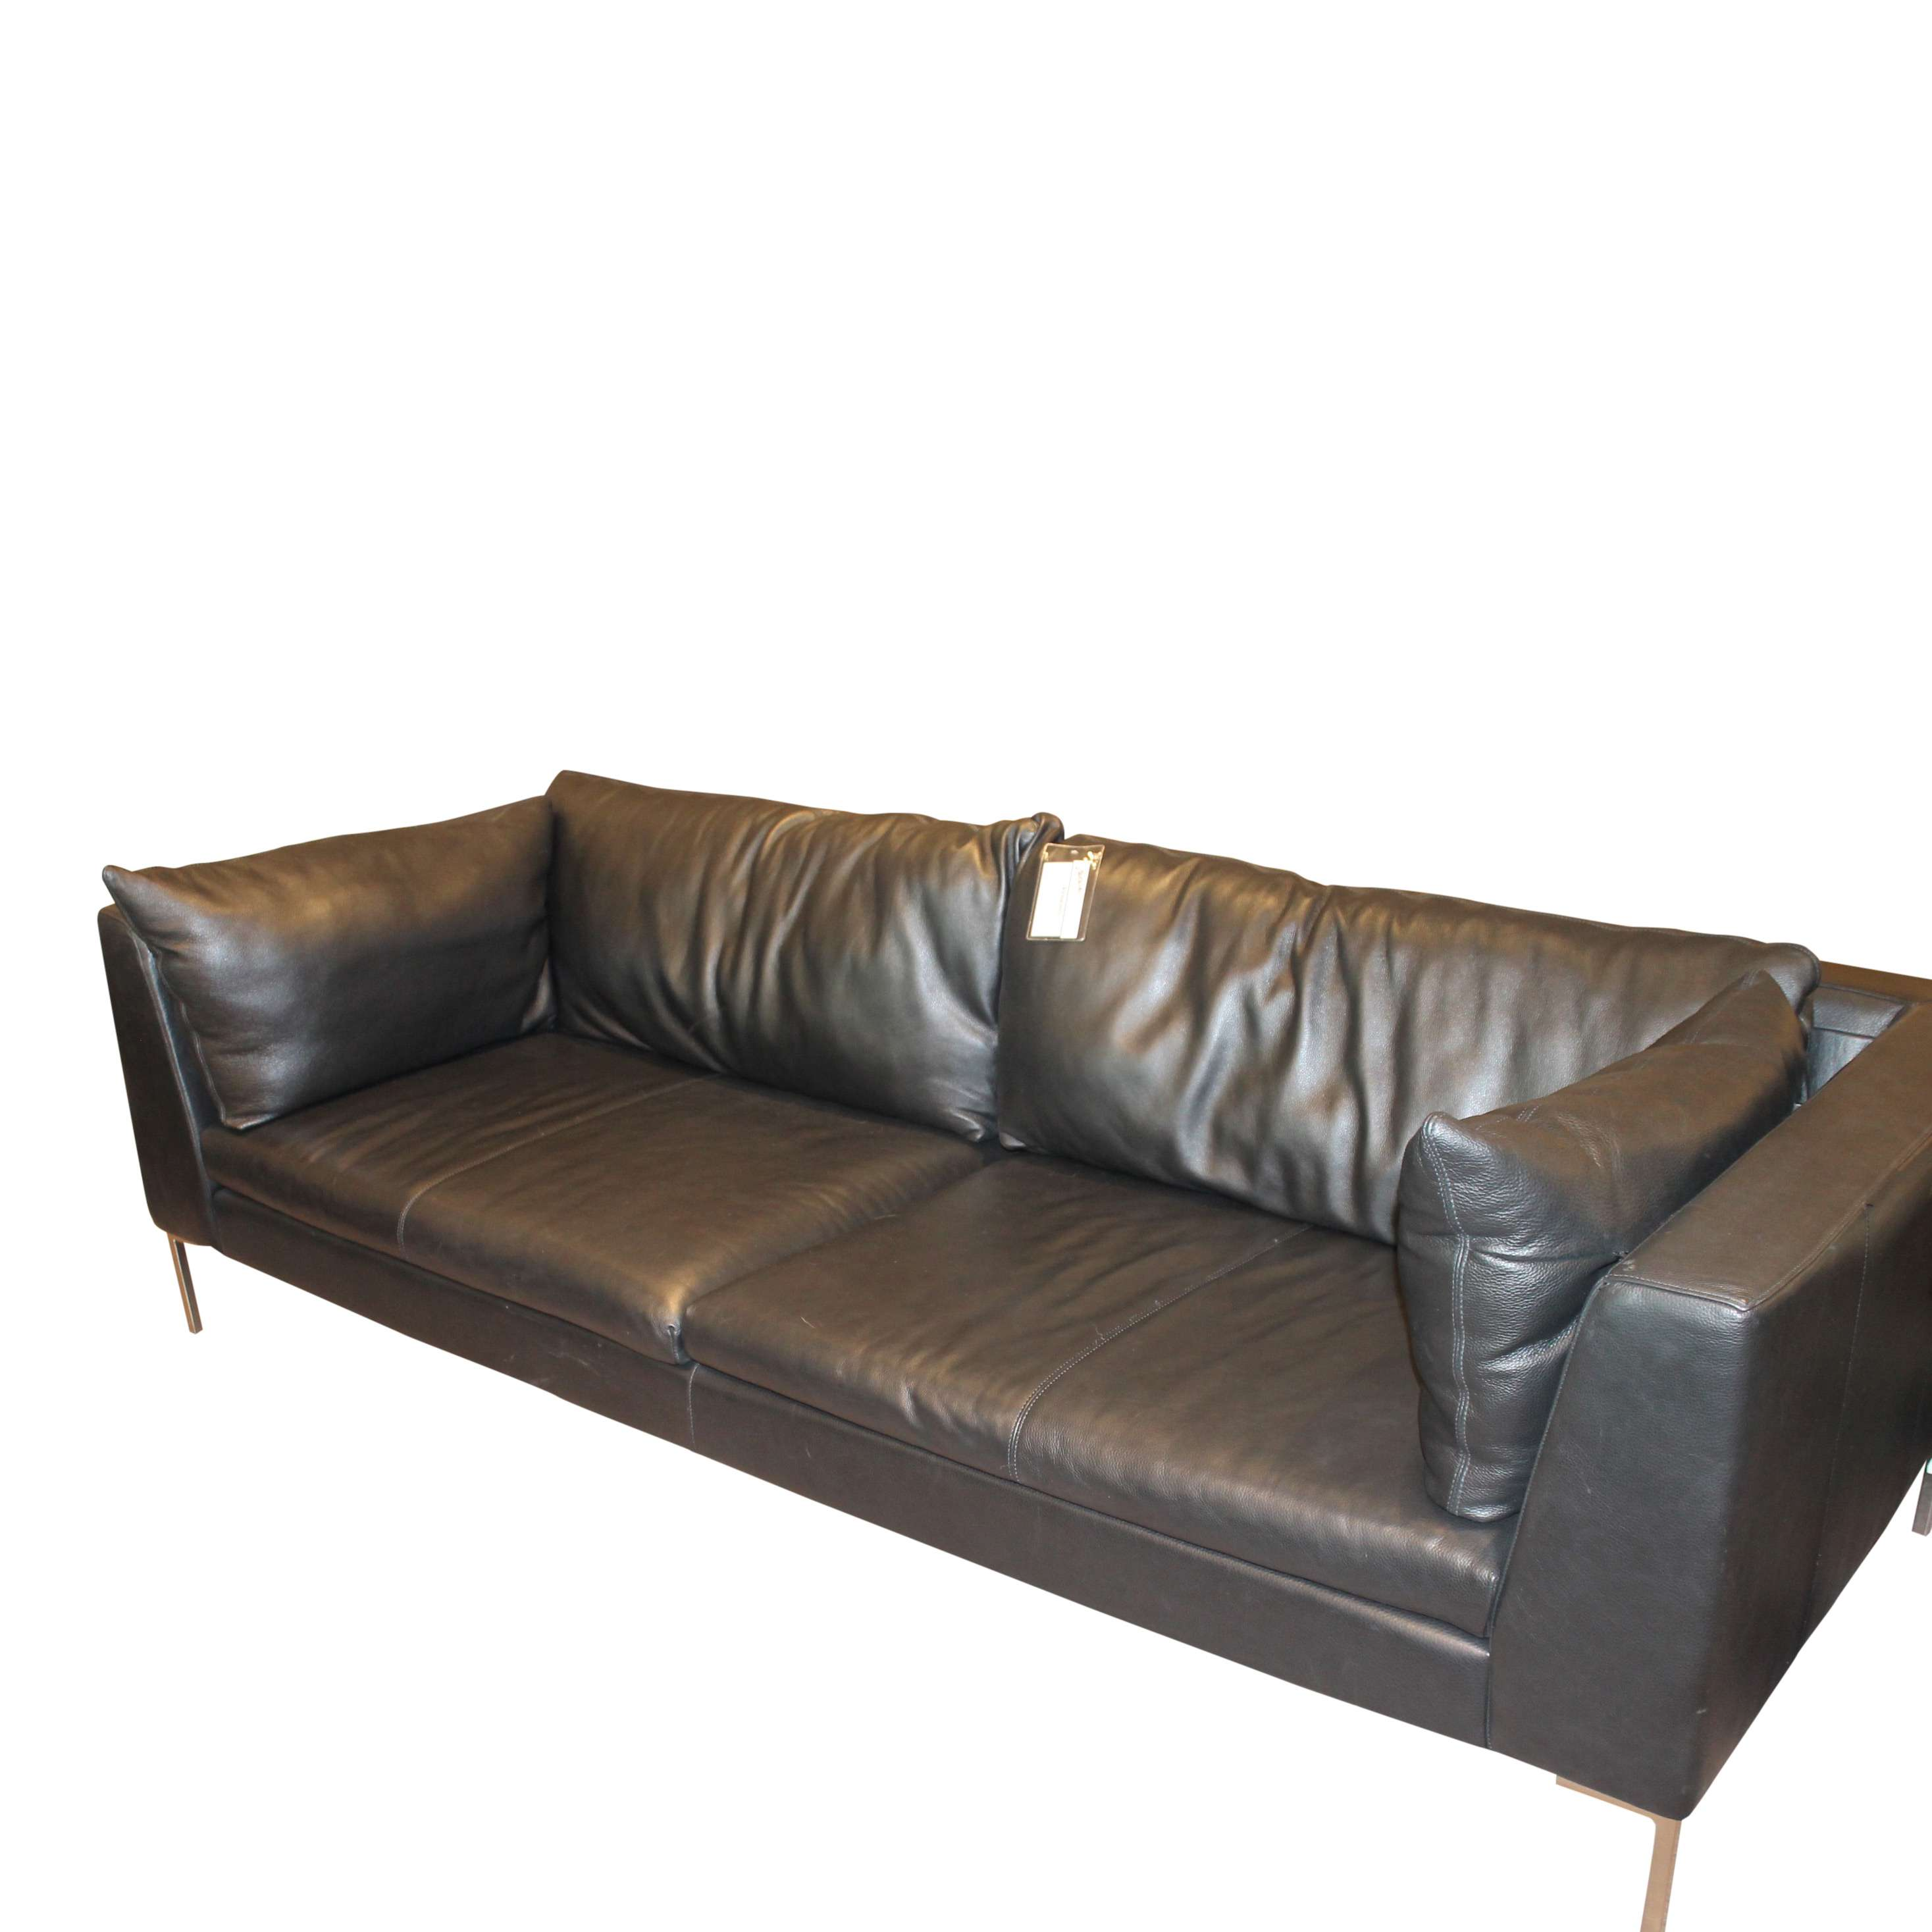 inspiration leather leather - American Leather Sofa